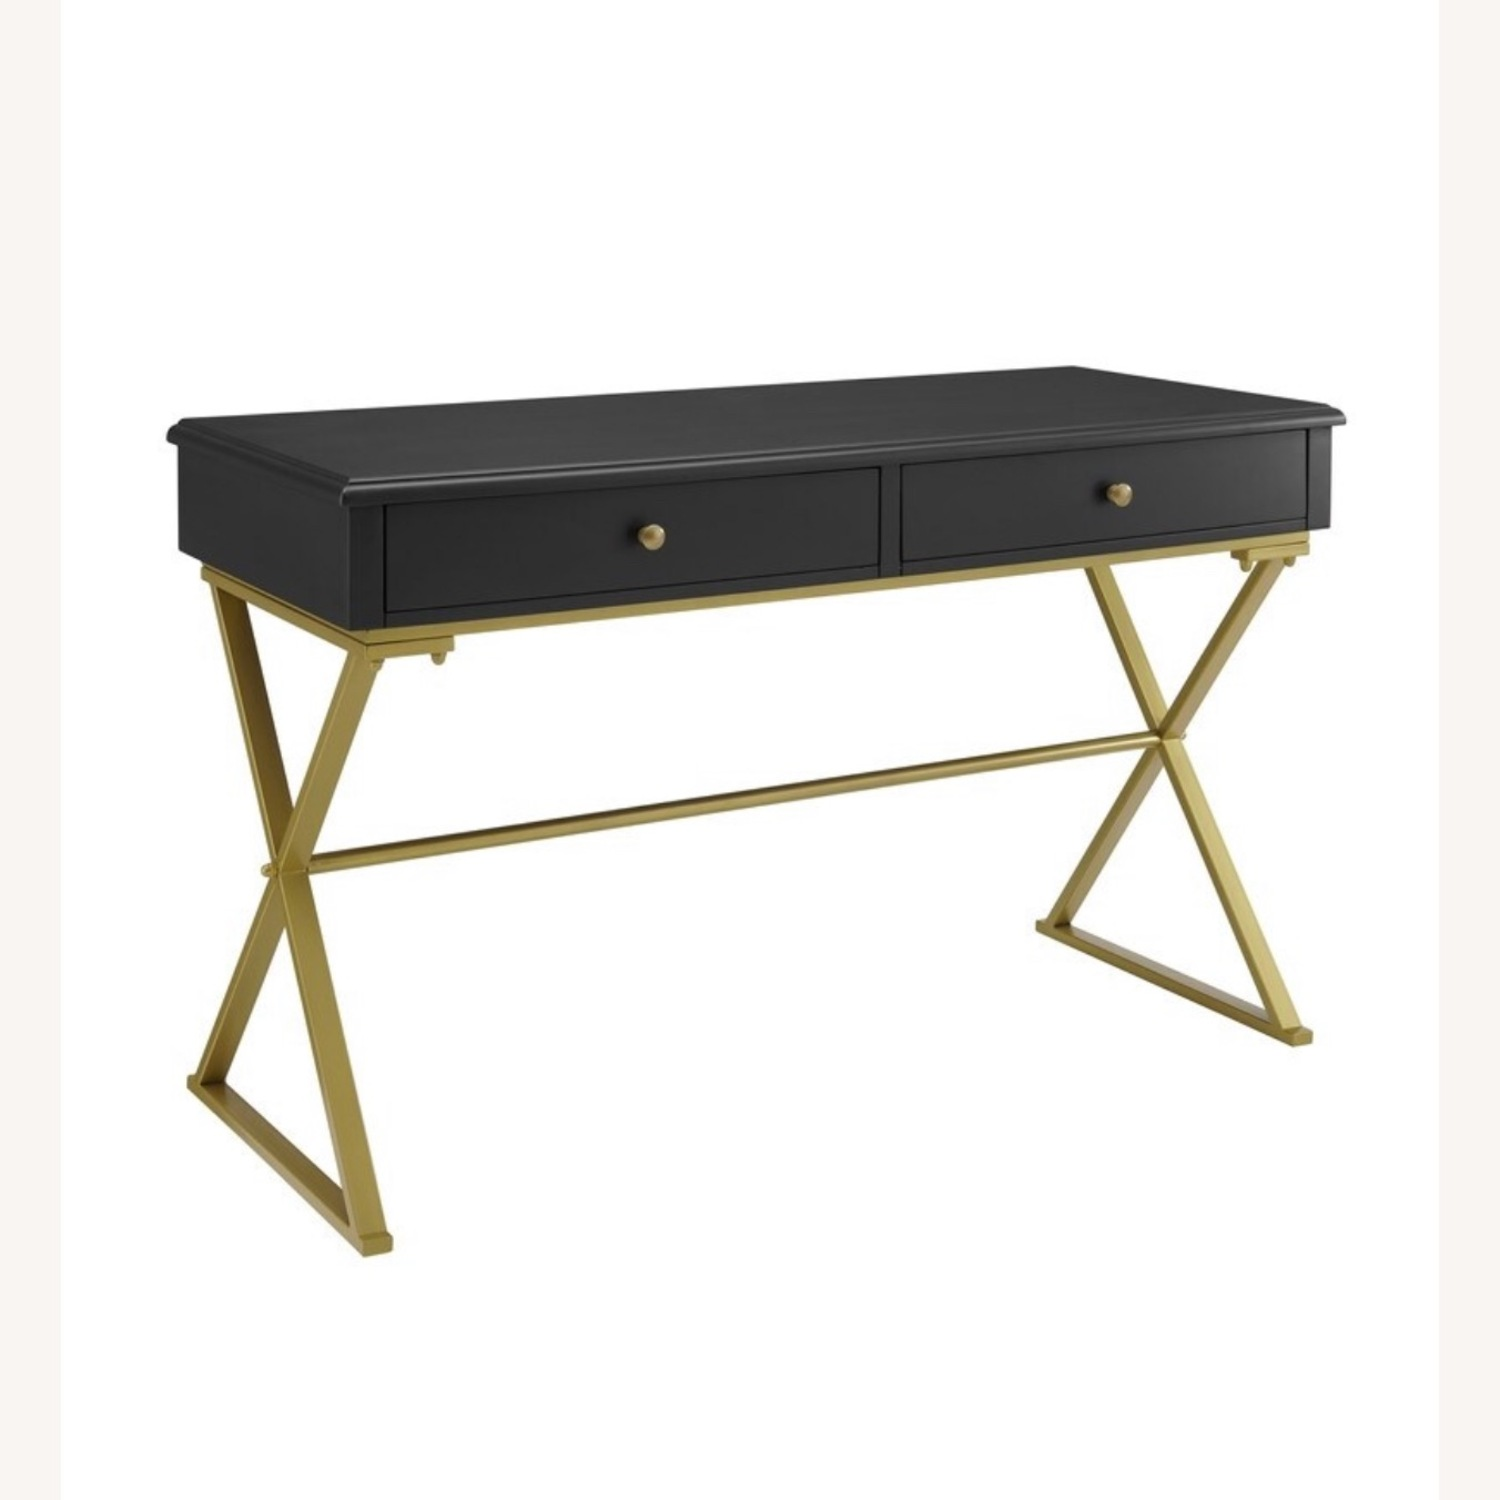 Black and Gold Campaign Style Desk - image-4